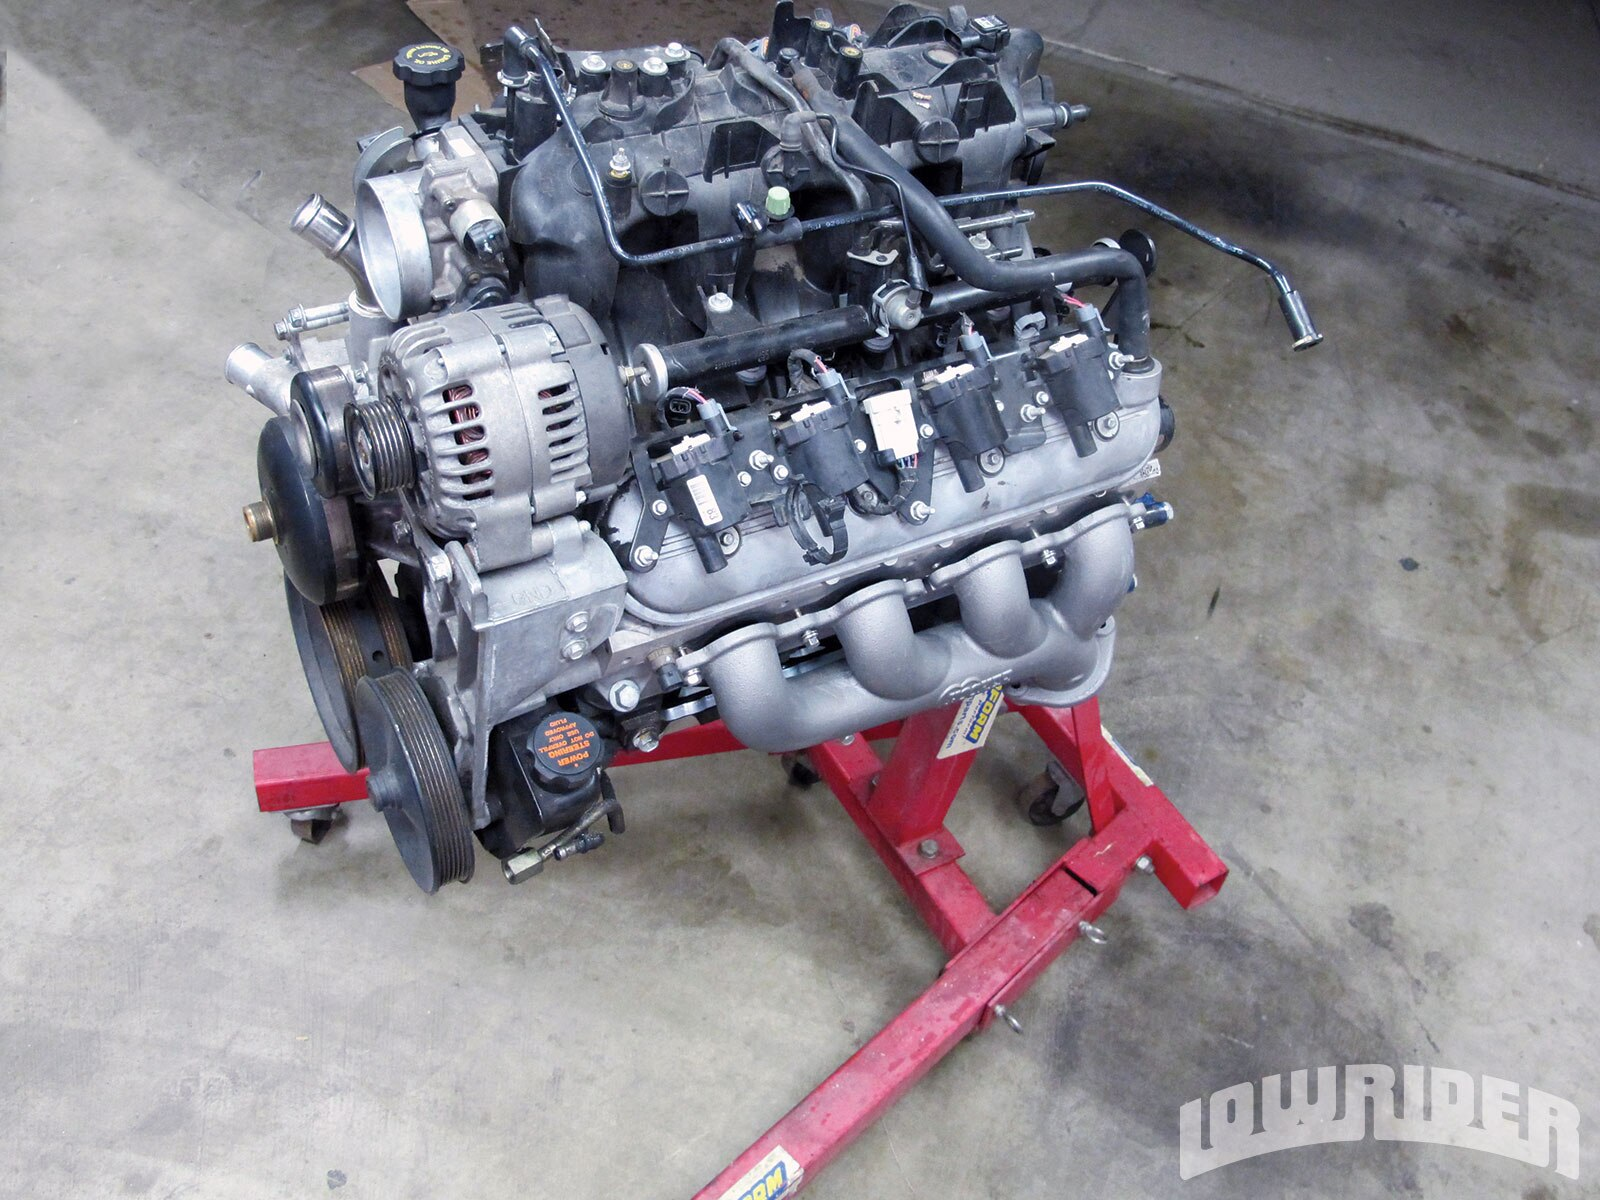 GM-engine-swap-engine-ready-for-installation1